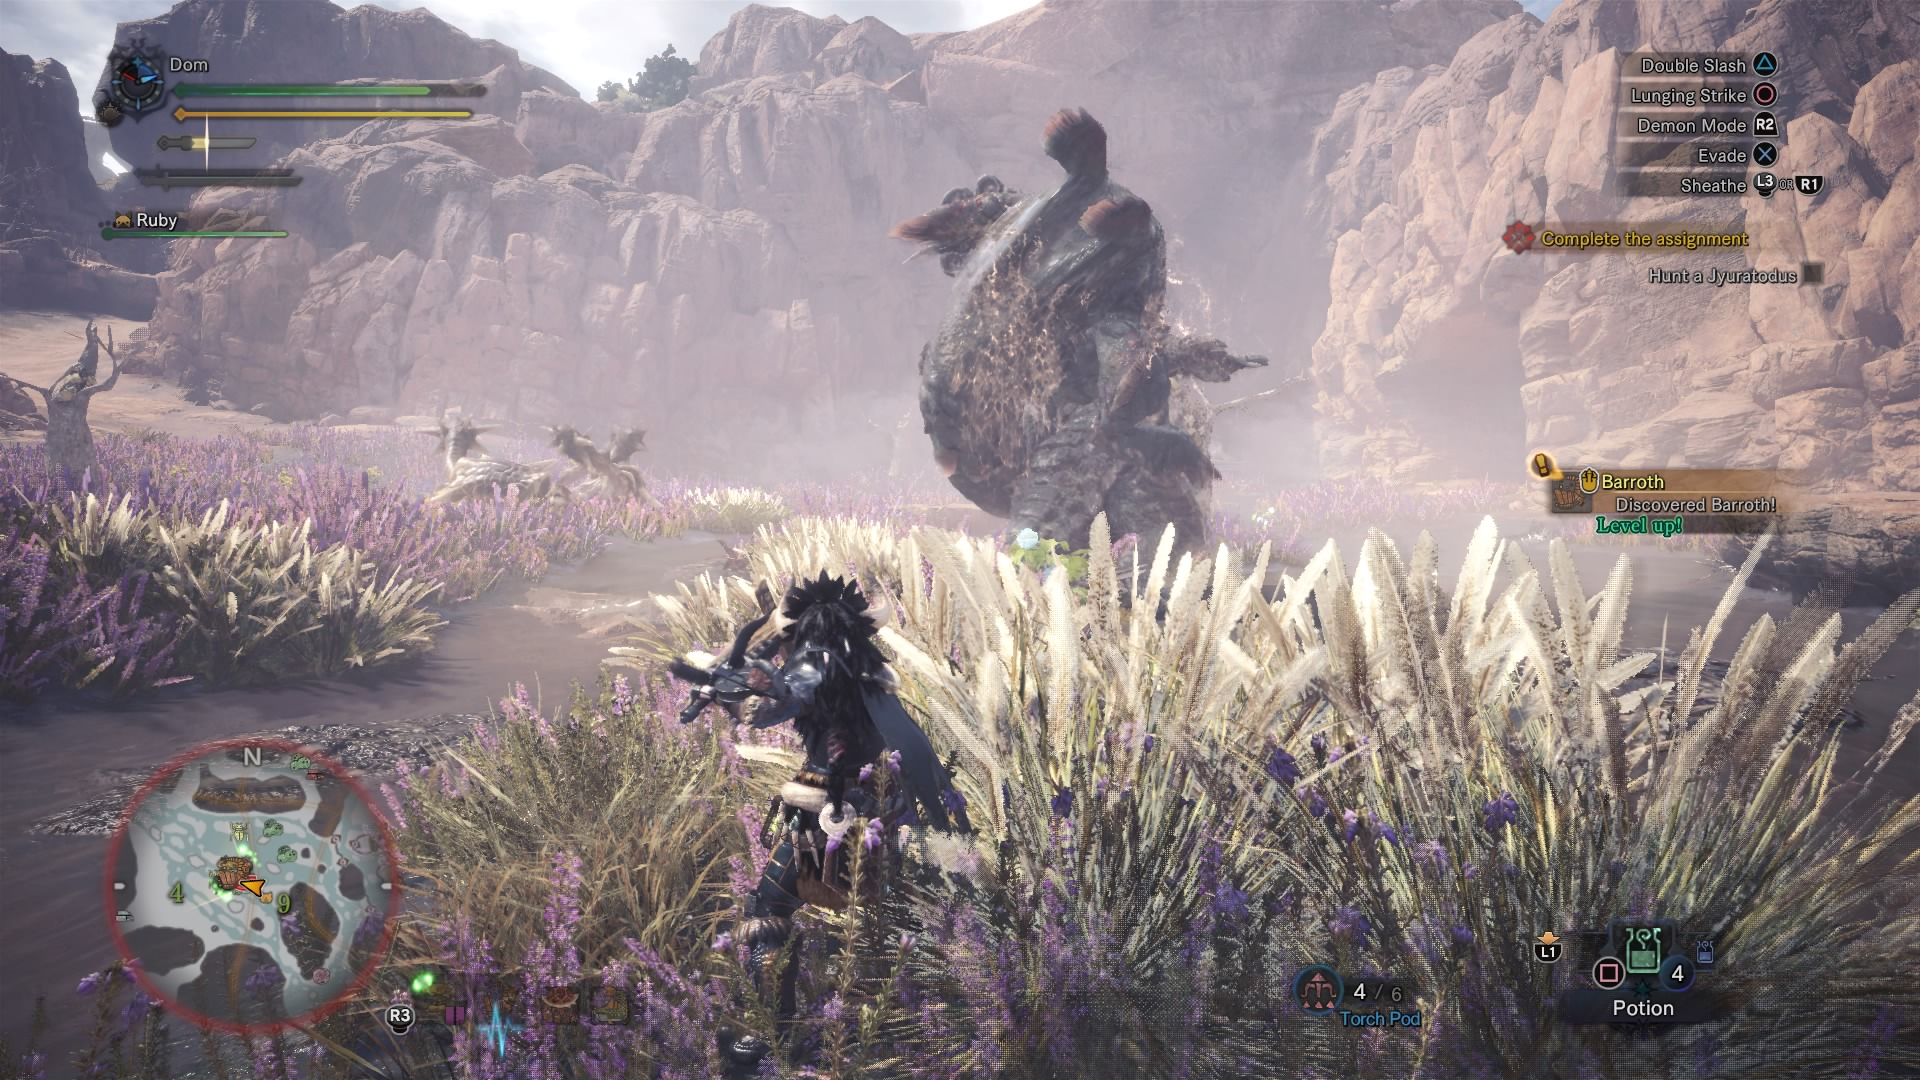 Monster Hunter: World is the PC game of your dreams (or more accurately, nightmares).